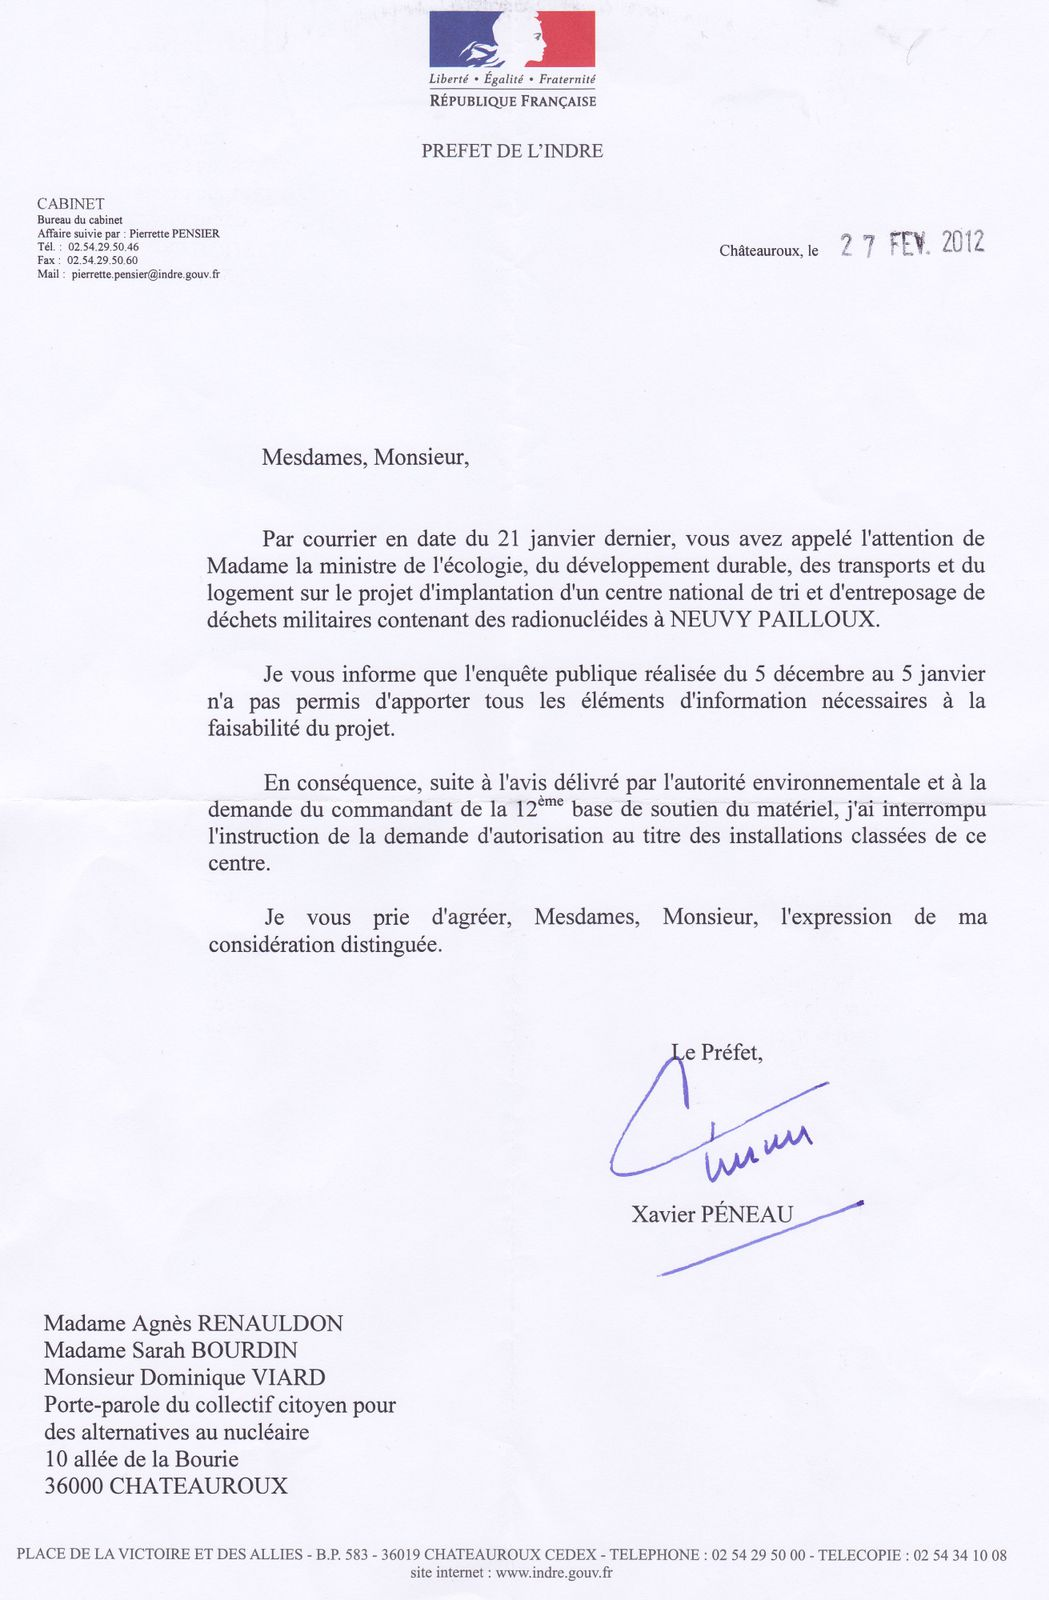 Courrier-du-prefet-27.02.12.jpg